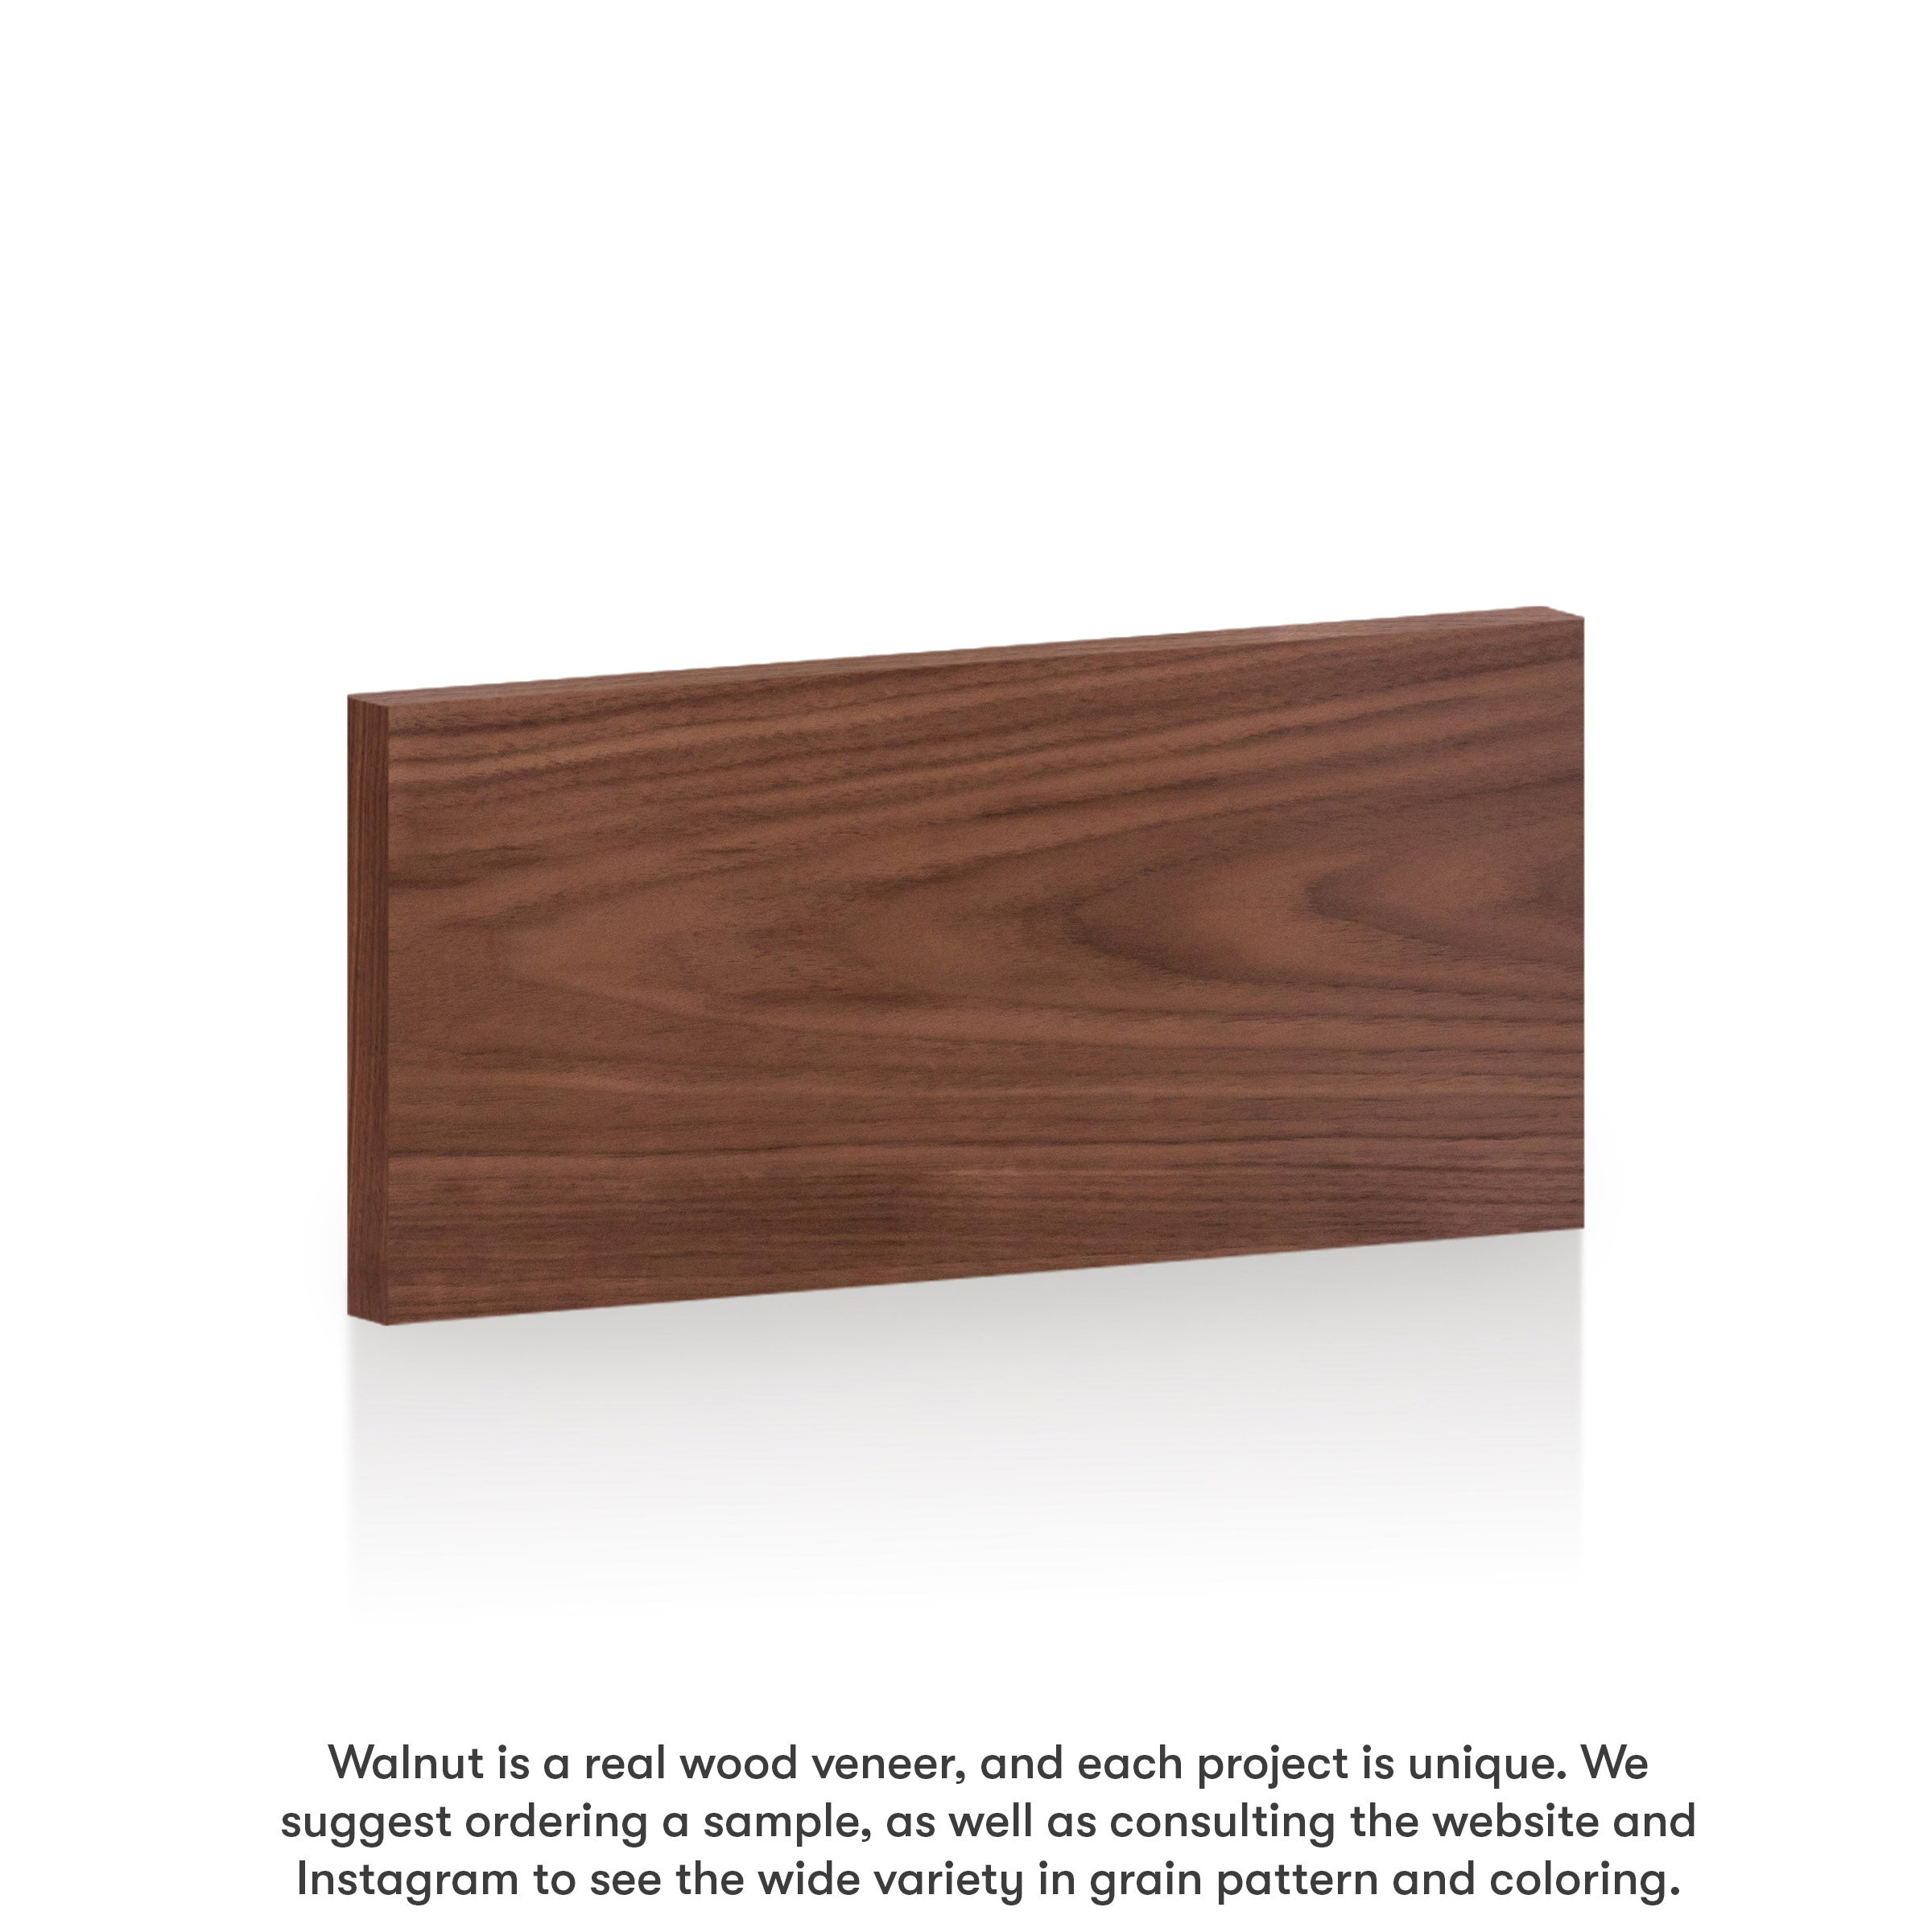 "Walnut Slab Drawer for Akurum (Horizontal Grain) 30"" / 12"" / Walnut - Horizontal"